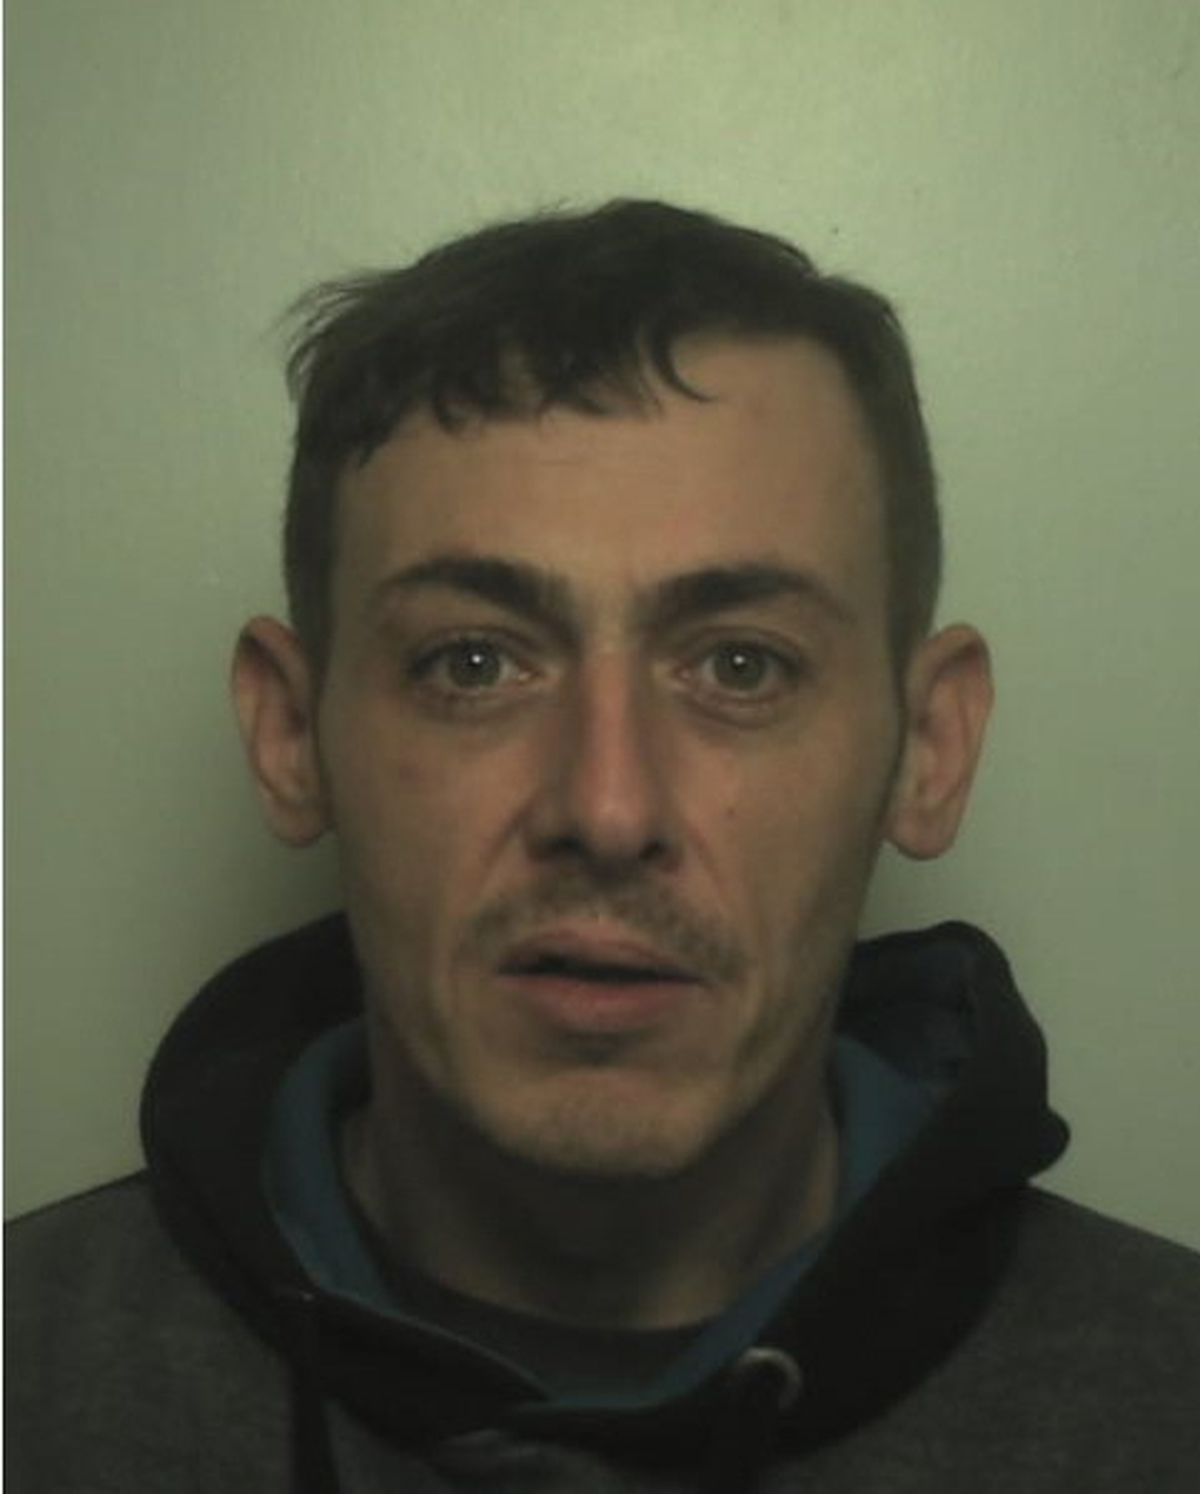 Gavin Hladkiy was jailed for two years and three months after admitting handling the stolen Mercedes